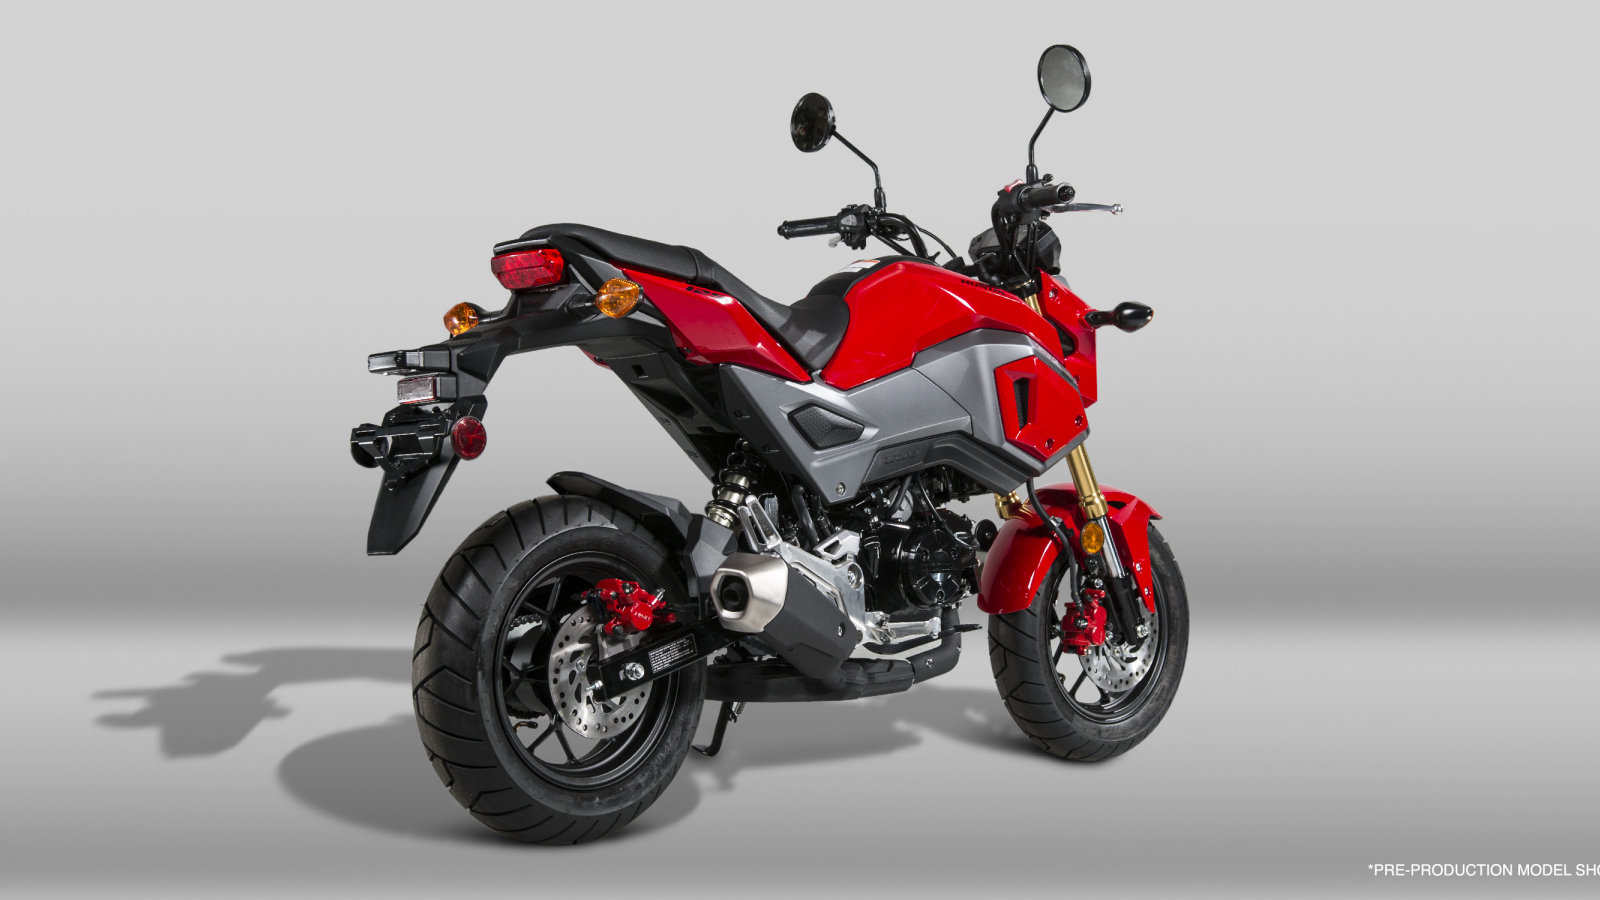 Honda Motorcycle Scooter 2017 2017 Honda Grom Picture 679122 Motorcycle Review Top